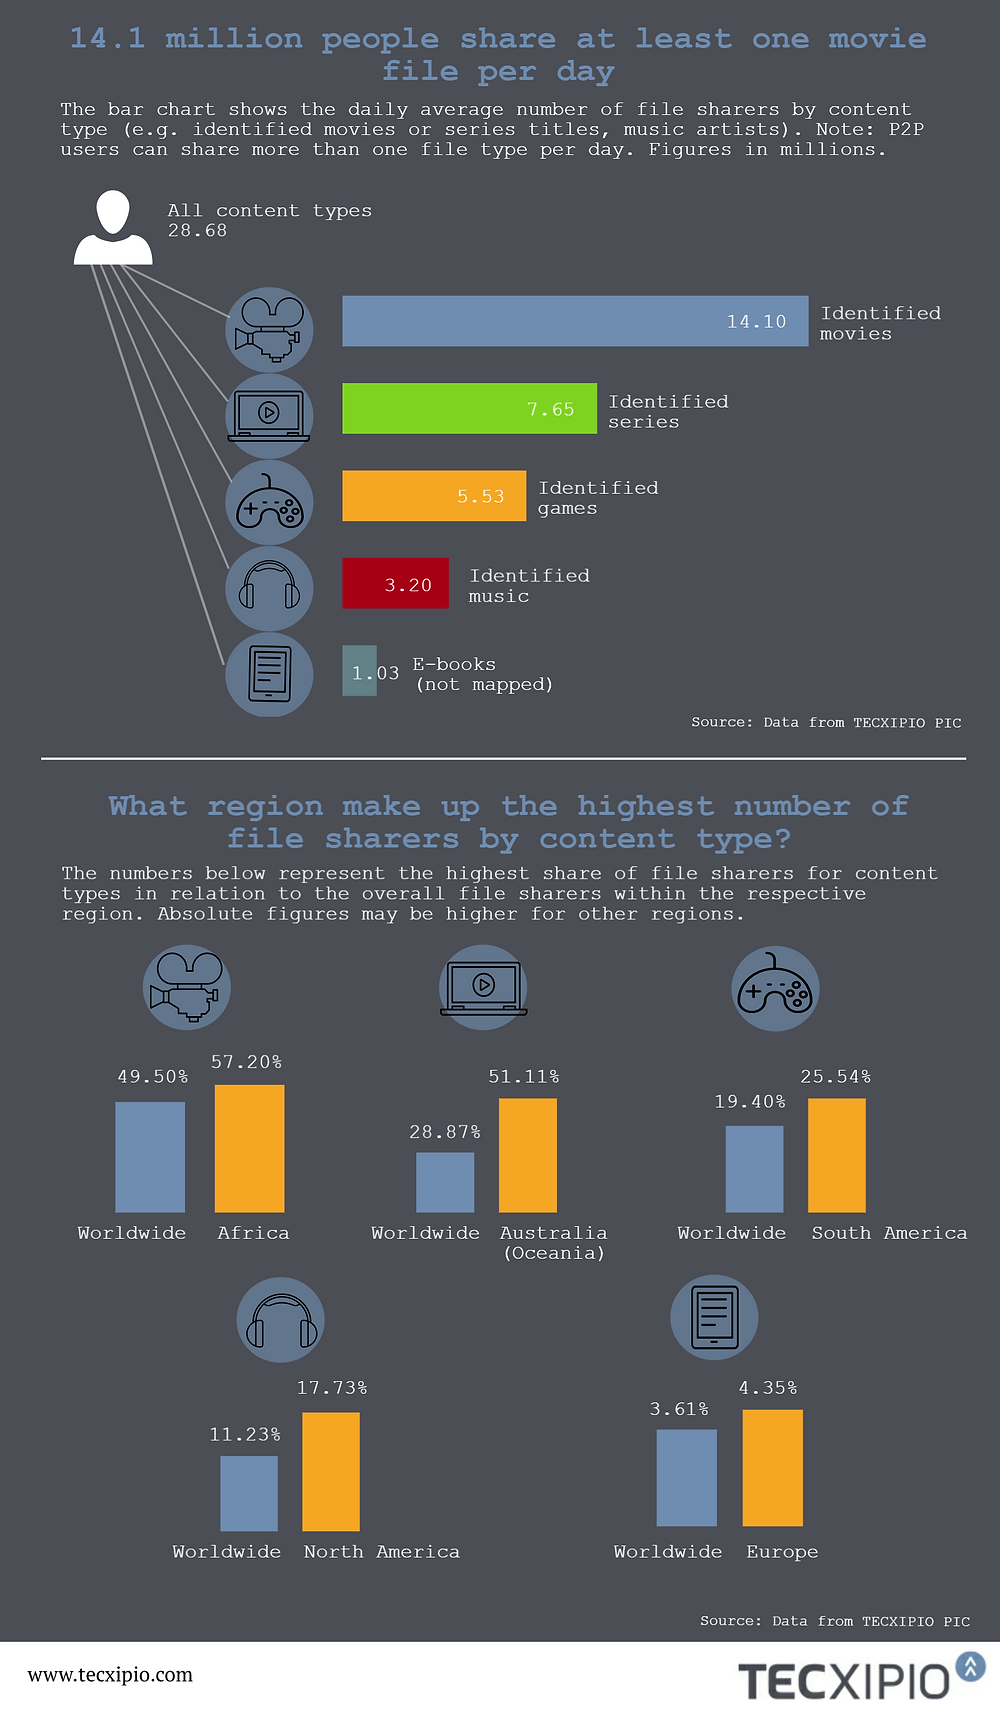 TECXIPIO infographic. Content types shared by file sharers, like movies, games or music artists and regional differences